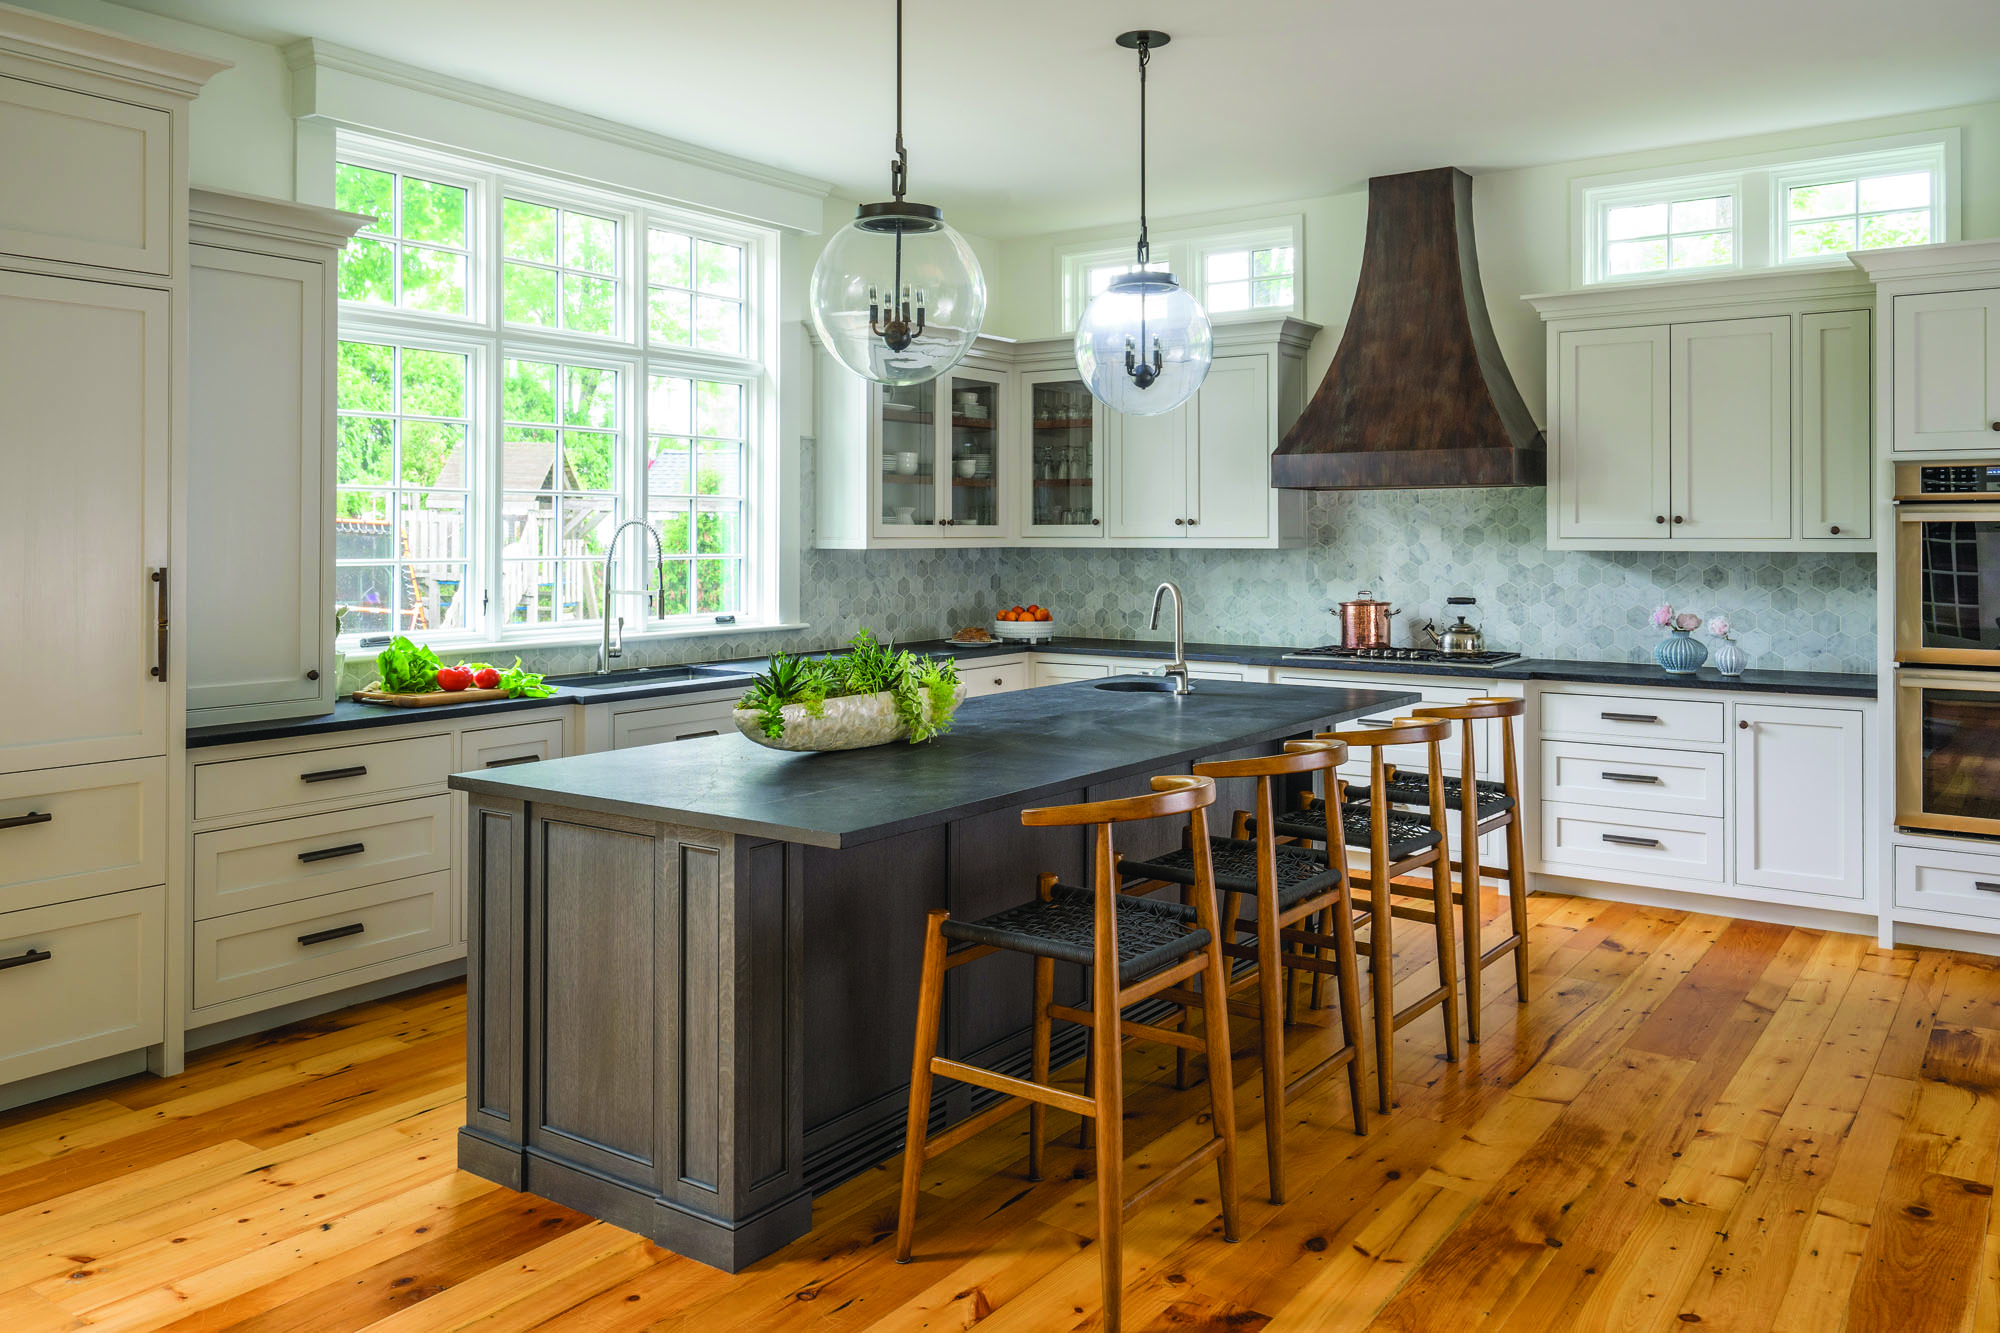 Jewett Farms + Co.'s to creates an updated farmhouse kitchen in an array of gray hues.